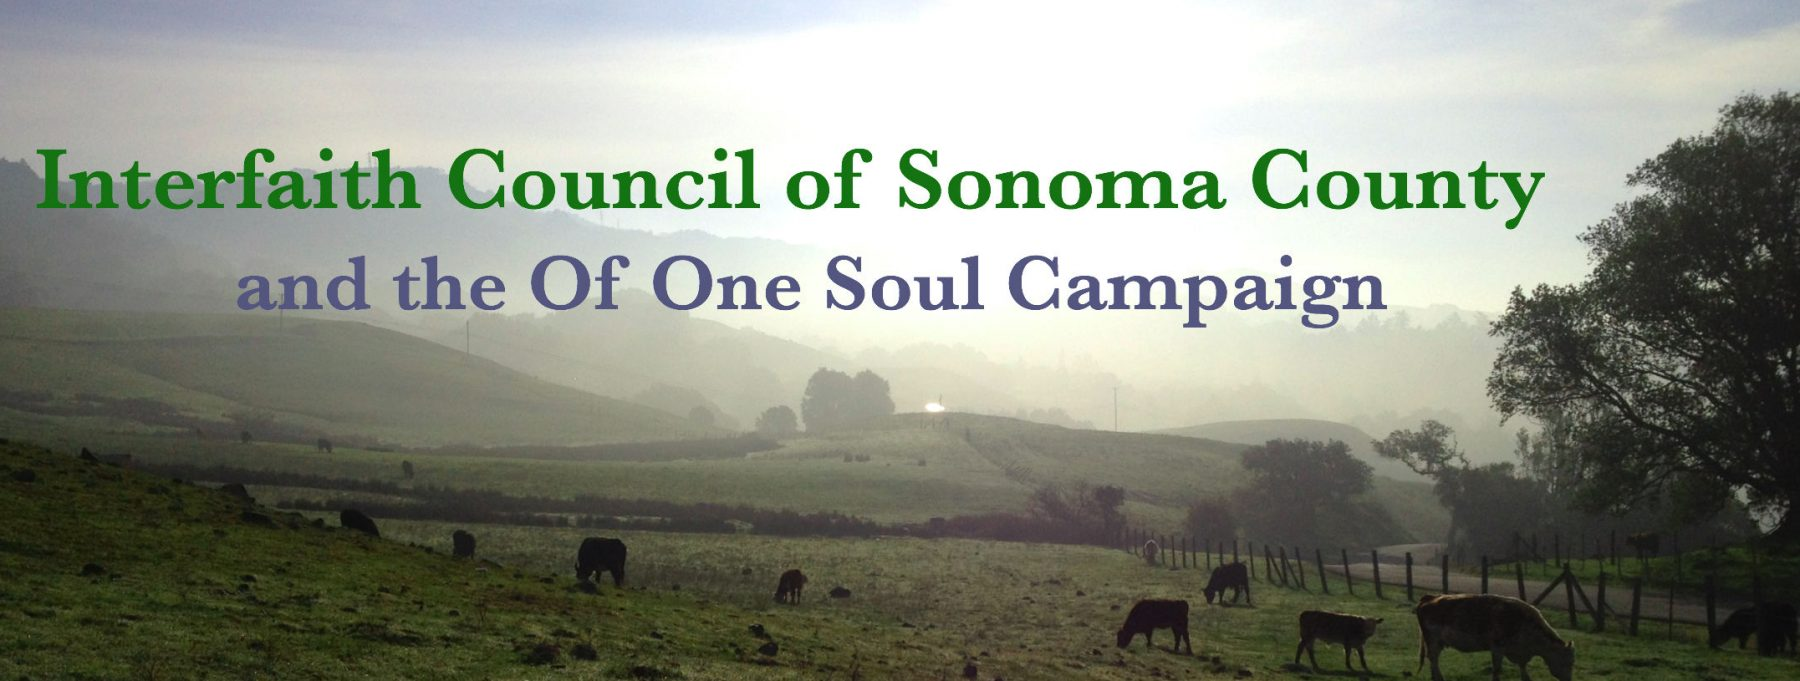 Interfaith Council of Sonoma County